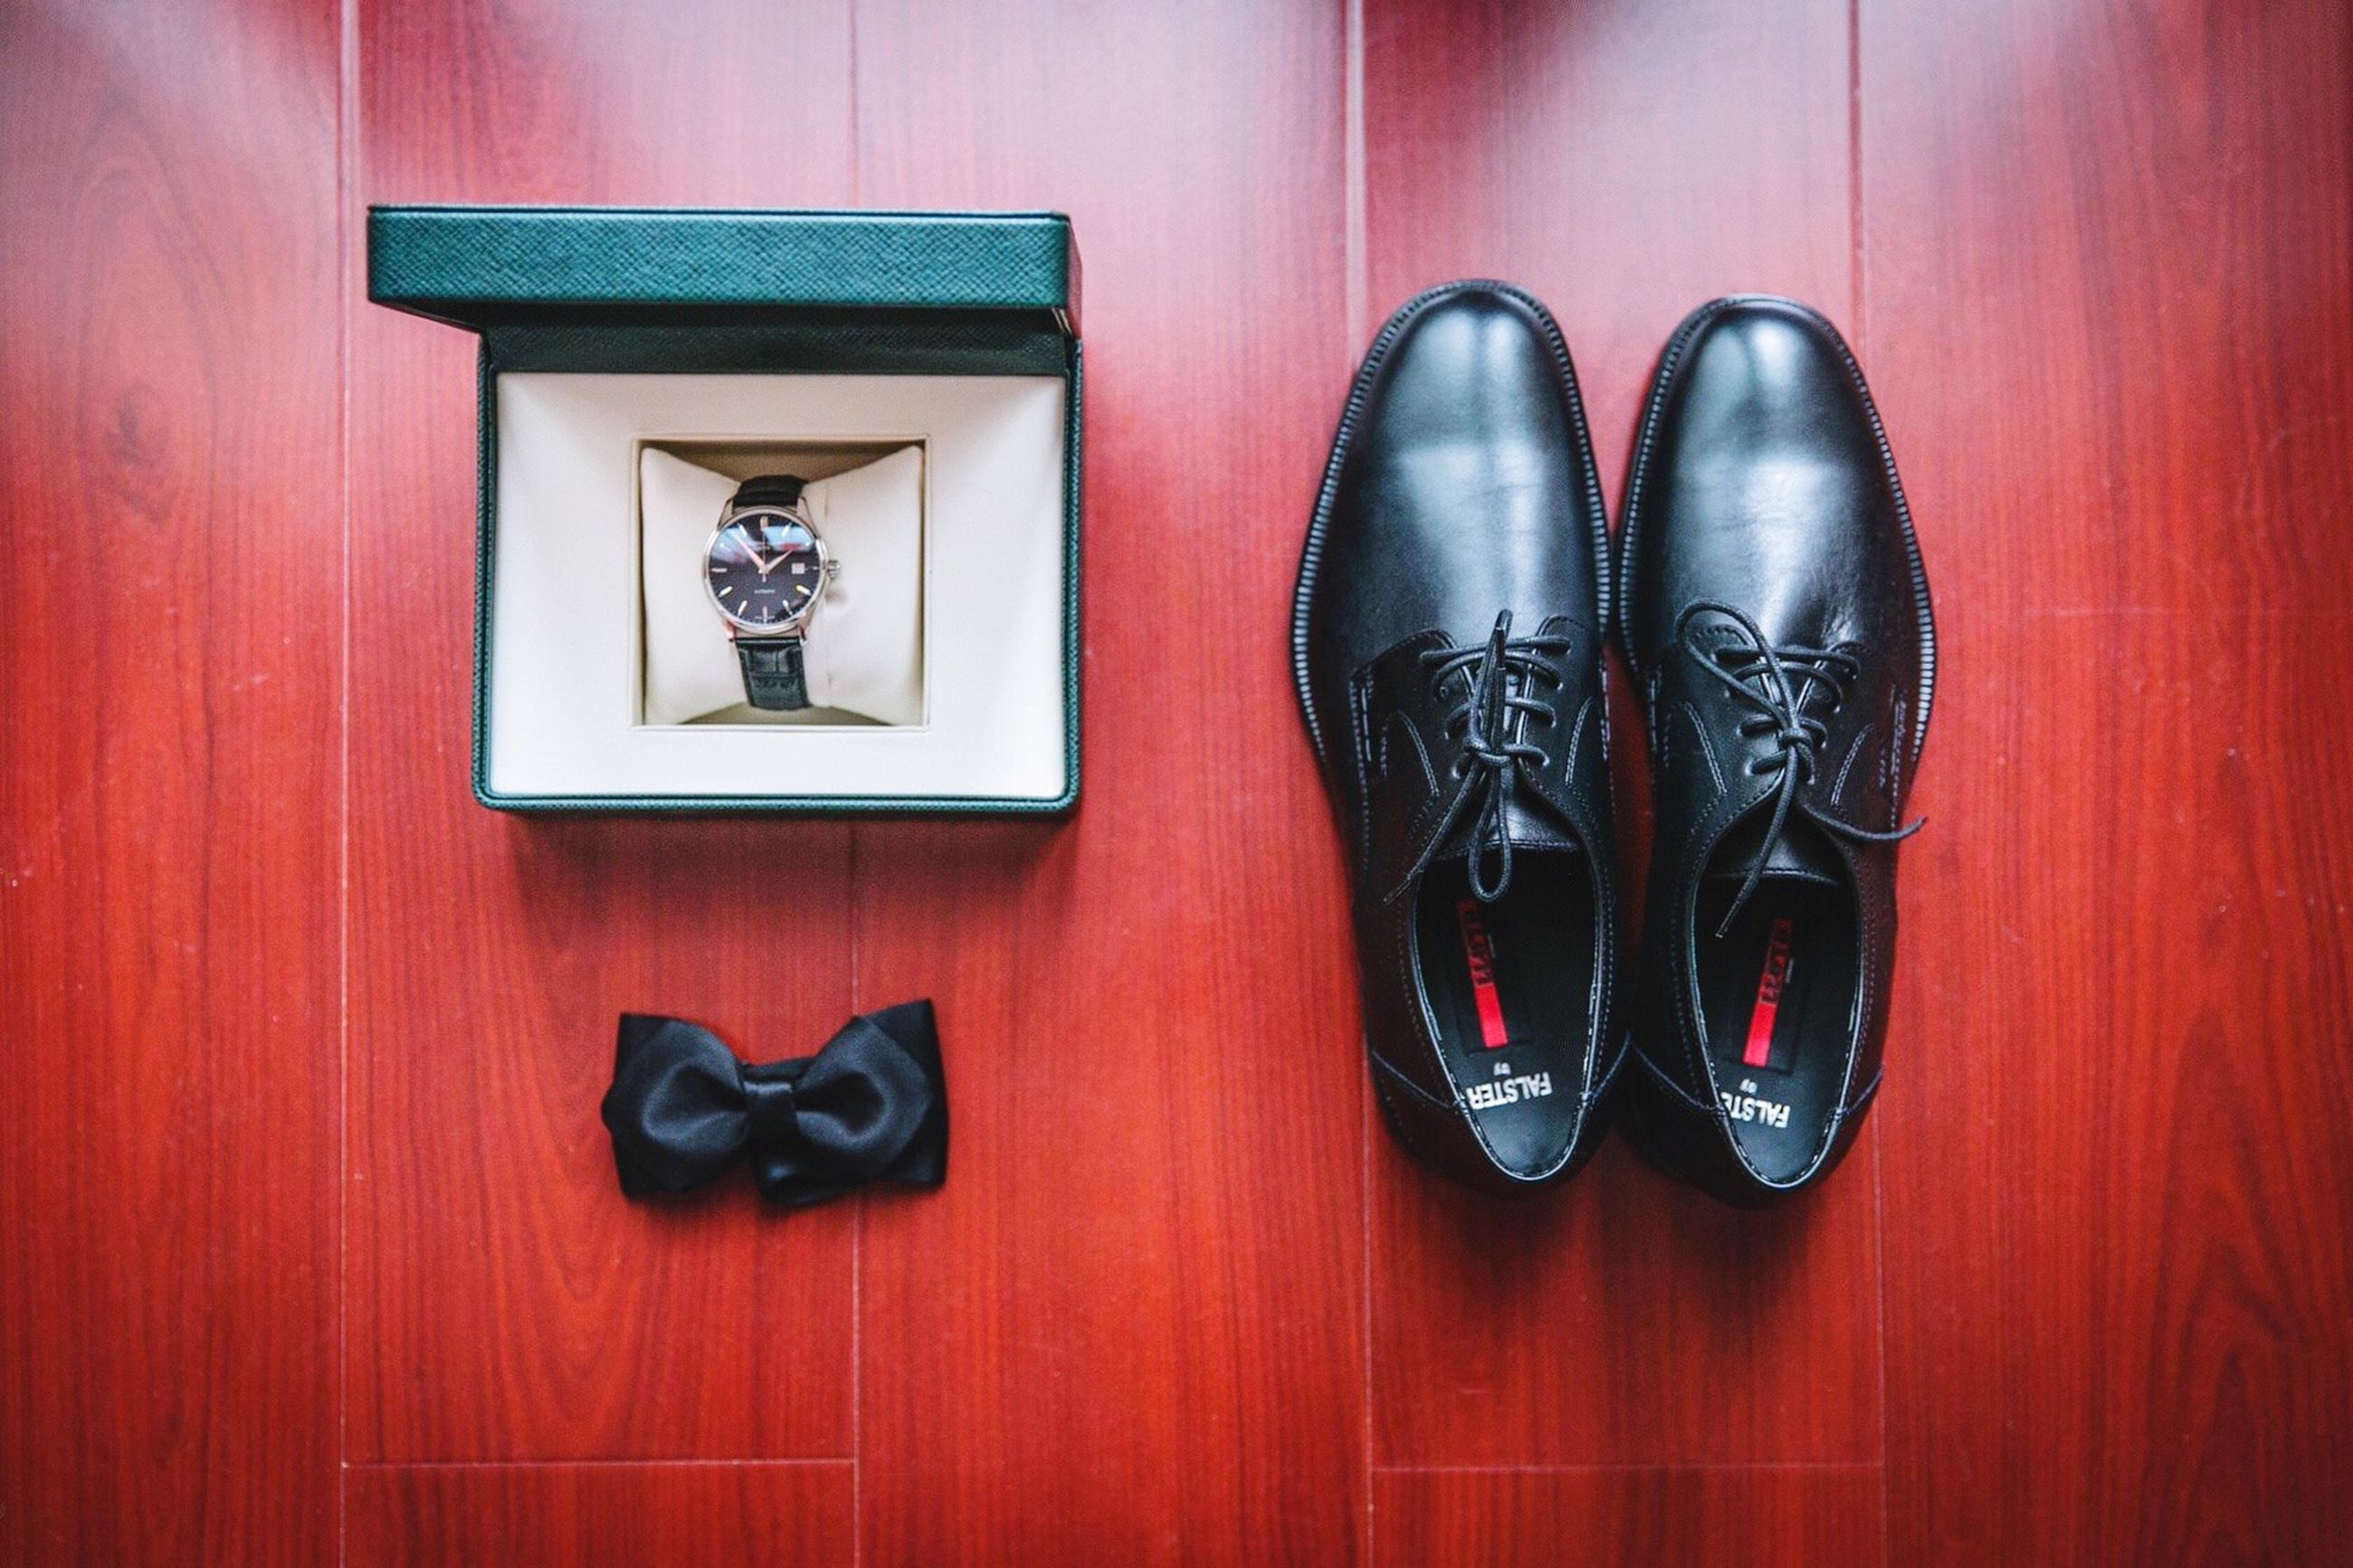 shoe, indoors, footwear, pair, low section, person, still life, red, high angle view, flooring, fashion, close-up, floor, directly above, table, wood - material, canvas shoe, two objects, human foot, shoelace